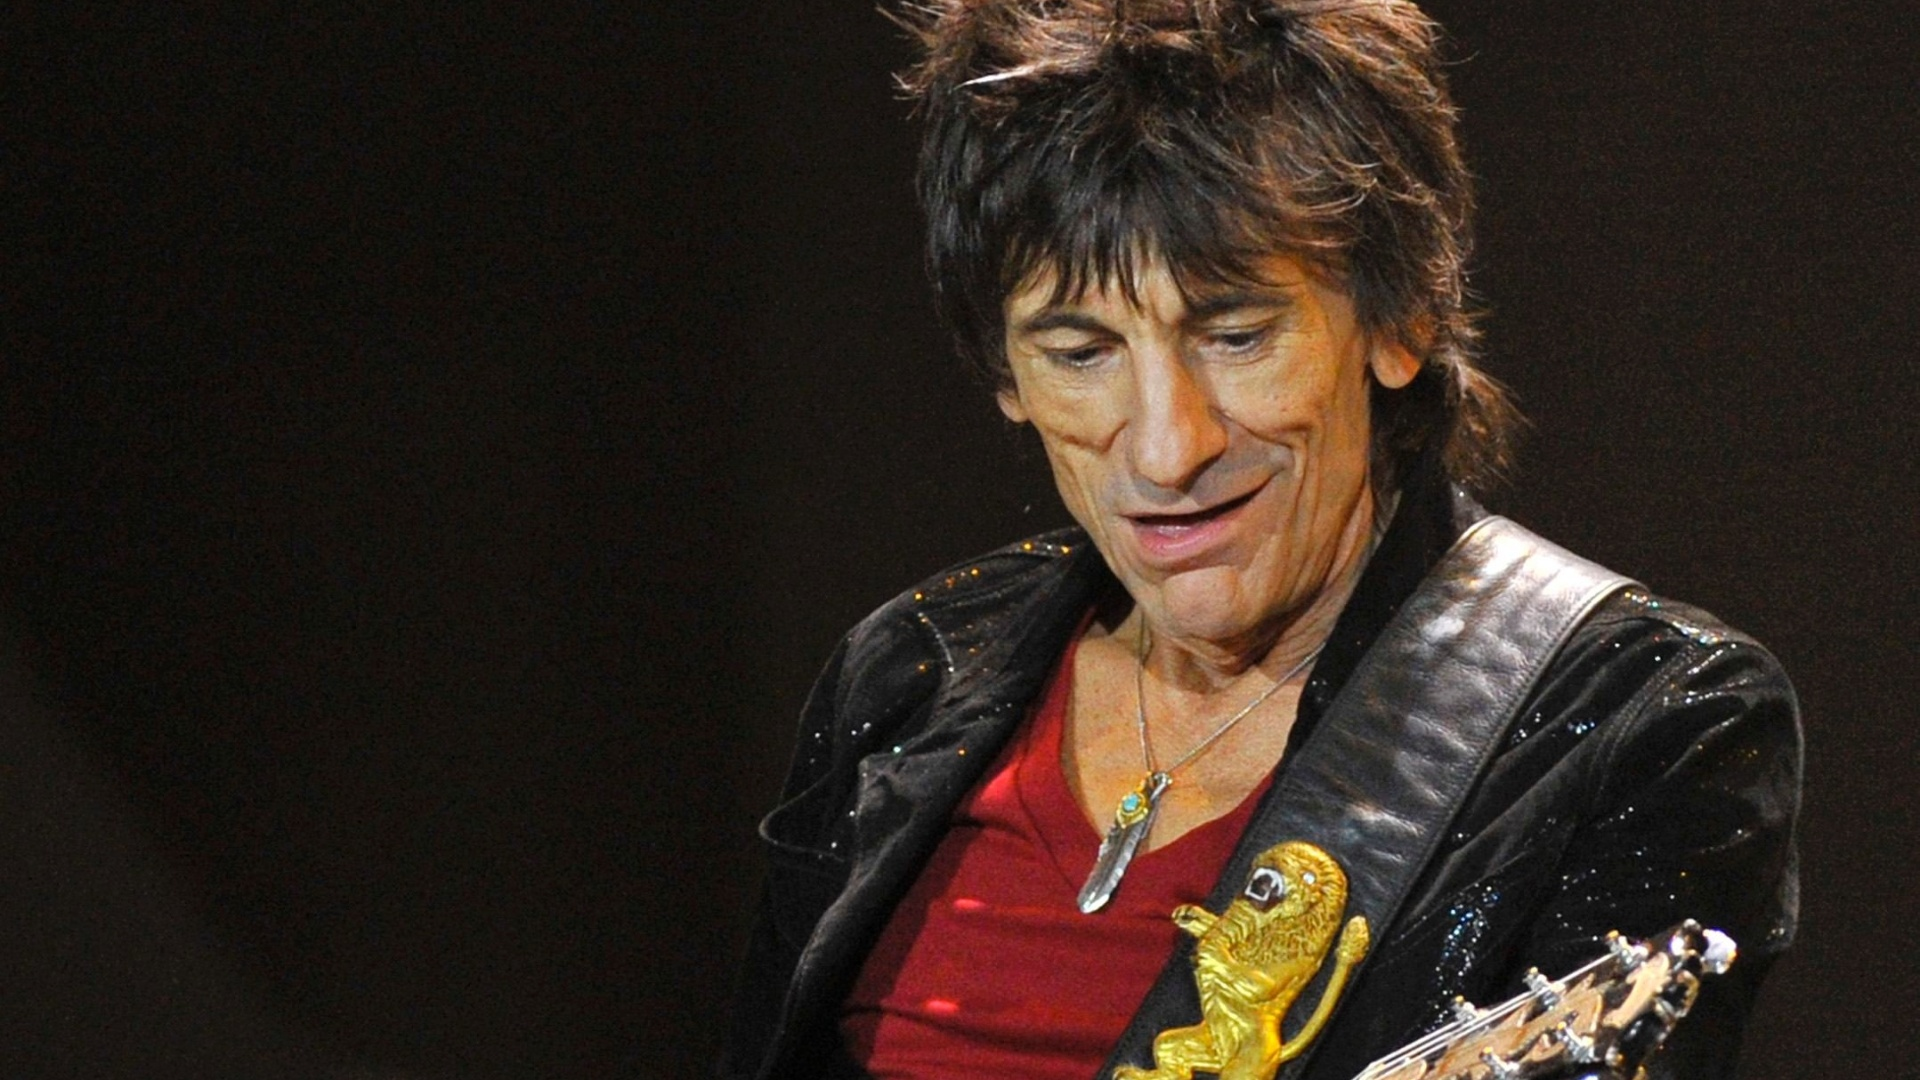 Ronnie Wood se apresenta no primeiro show dos Stones depois de um hiato de 5 anos (25/11/12)